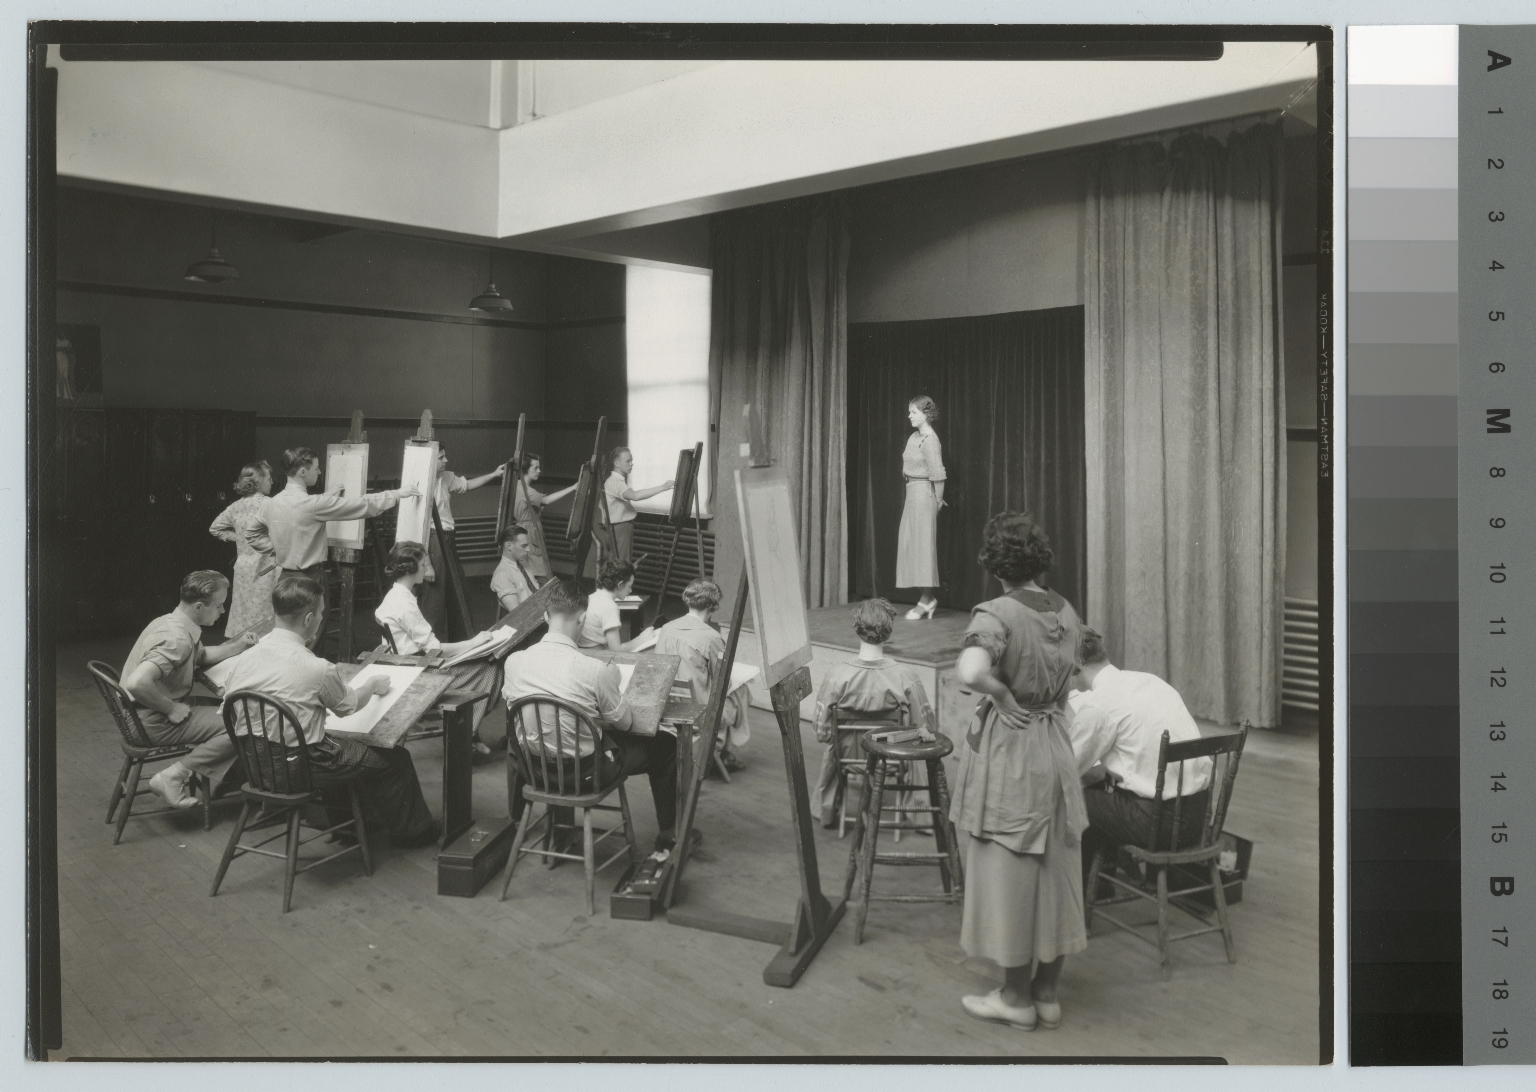 Academics, art and design, Rochester Athenaeum and Mechanics Institute life drawing class, [1930-1940]